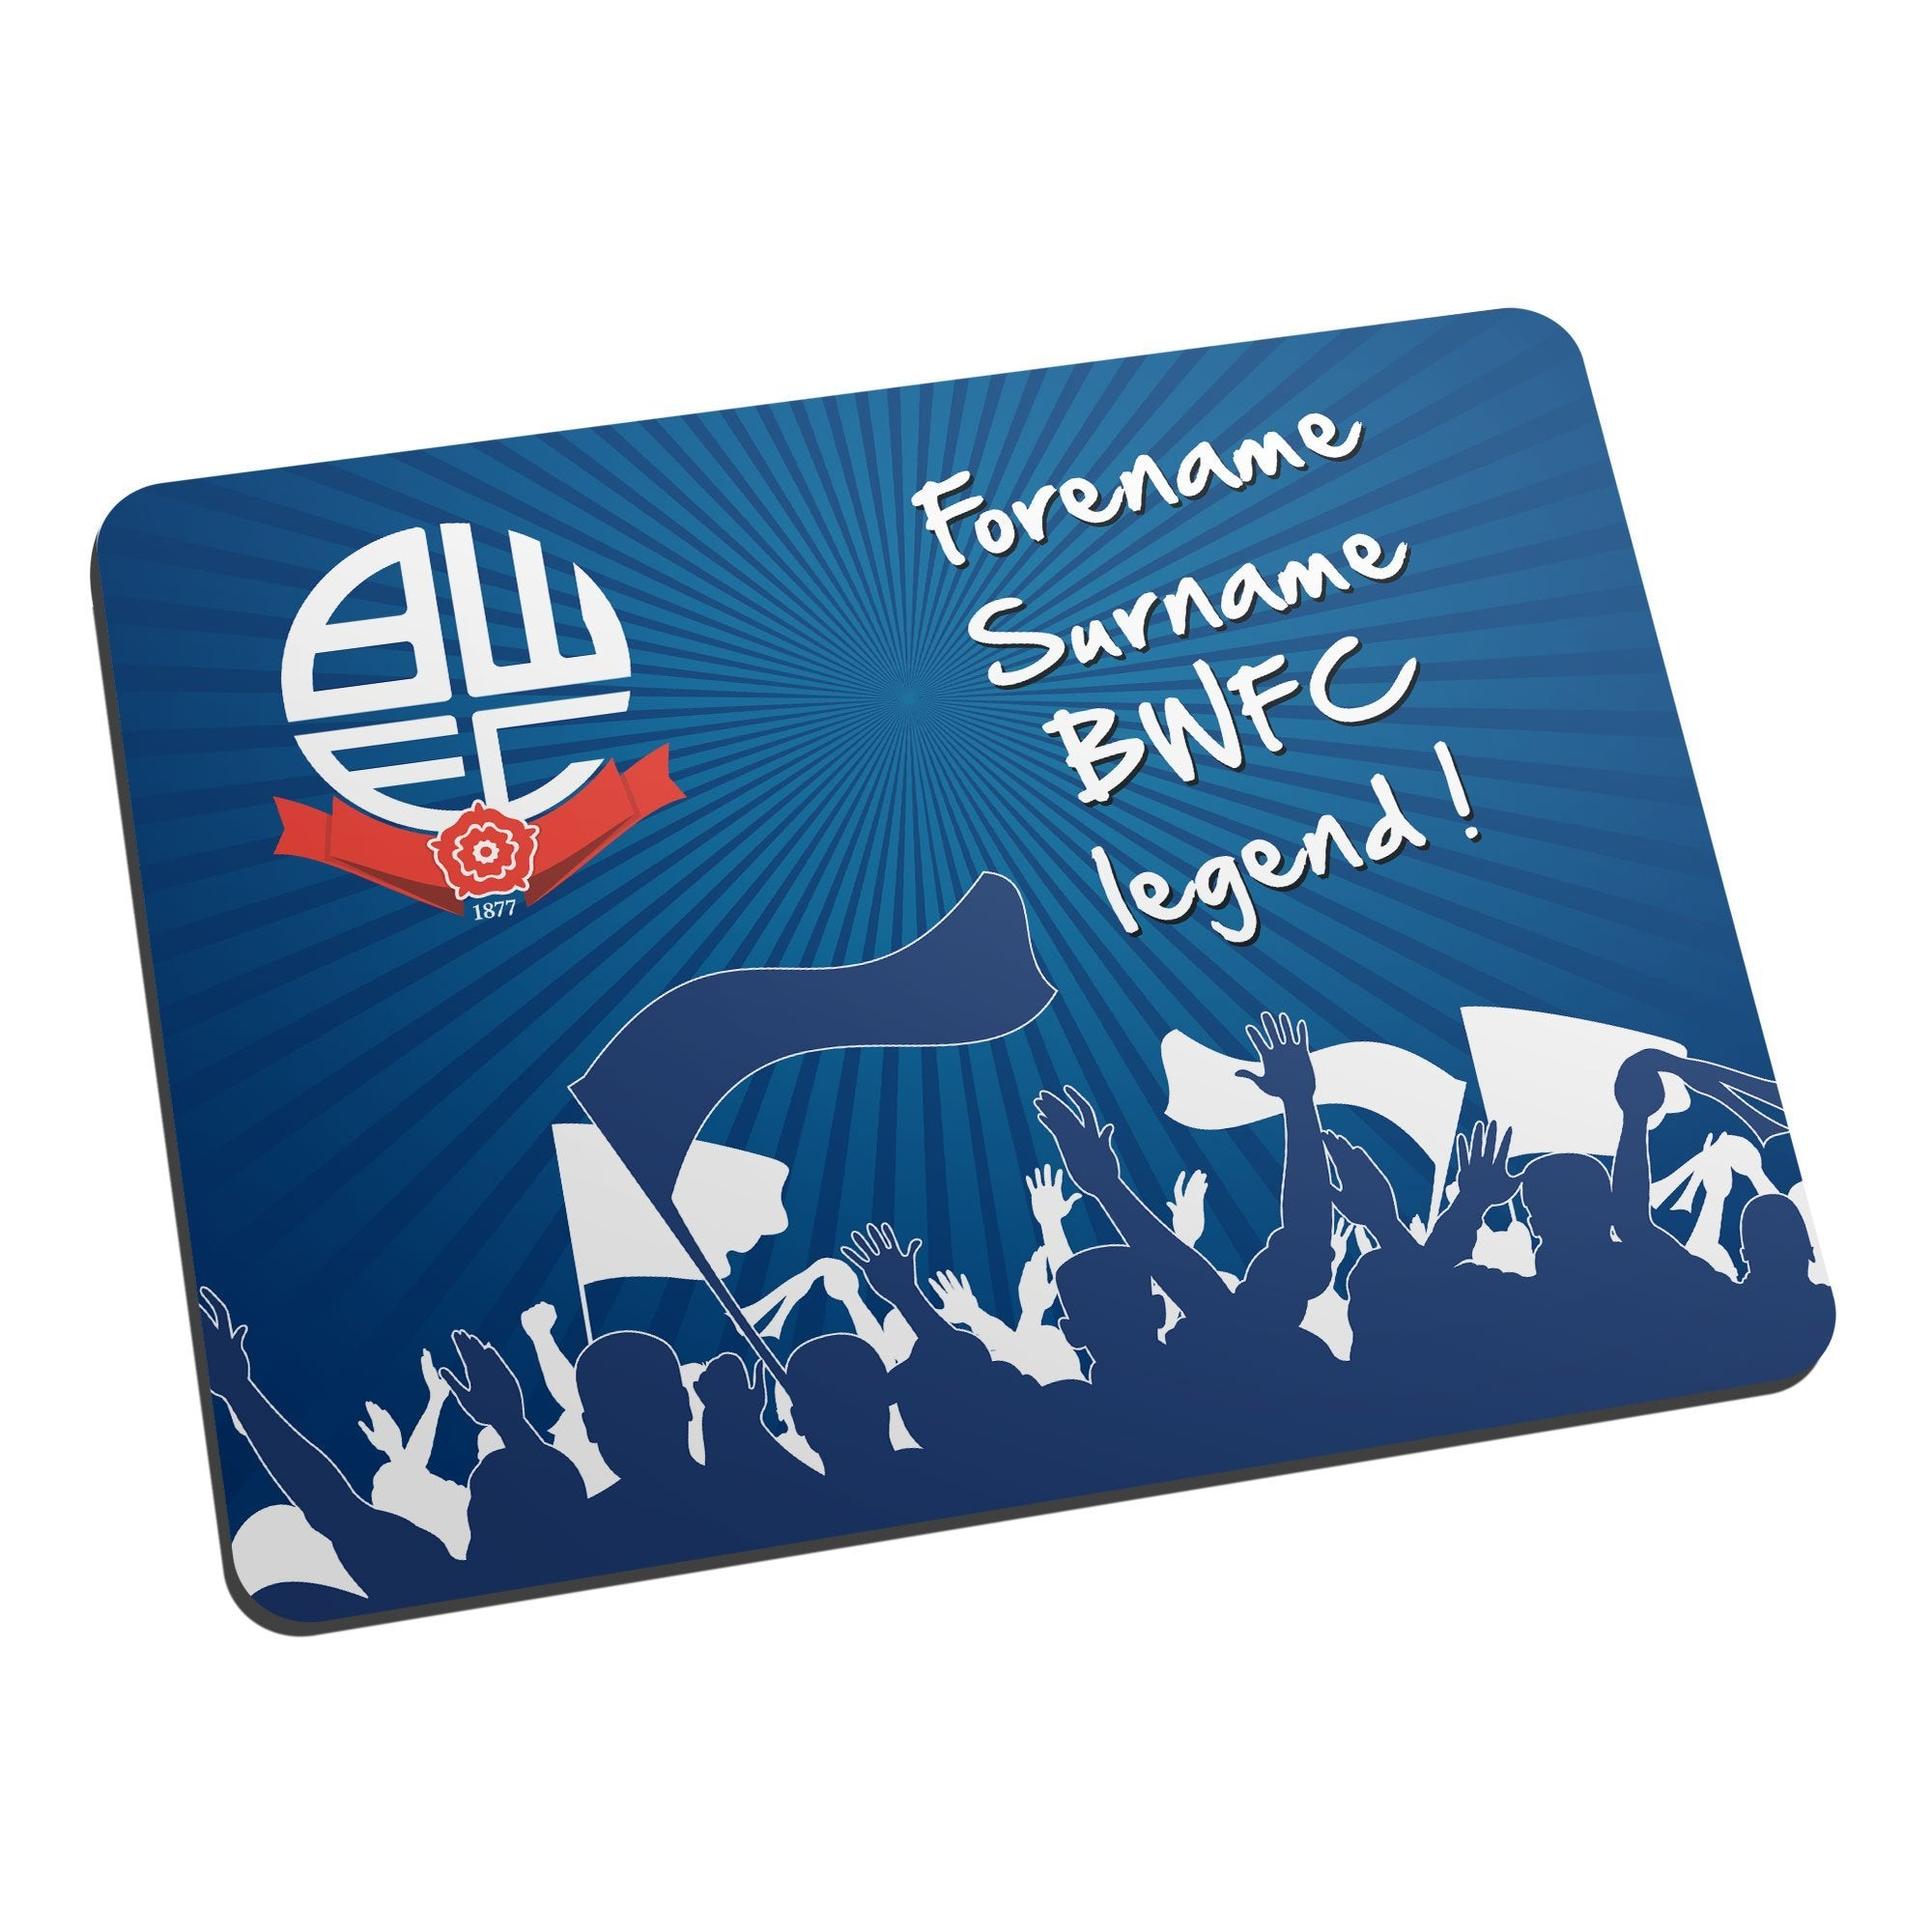 Personalised Bolton Wanderers FC Legend Mouse Mat, Electronics by Glamorous Gifts